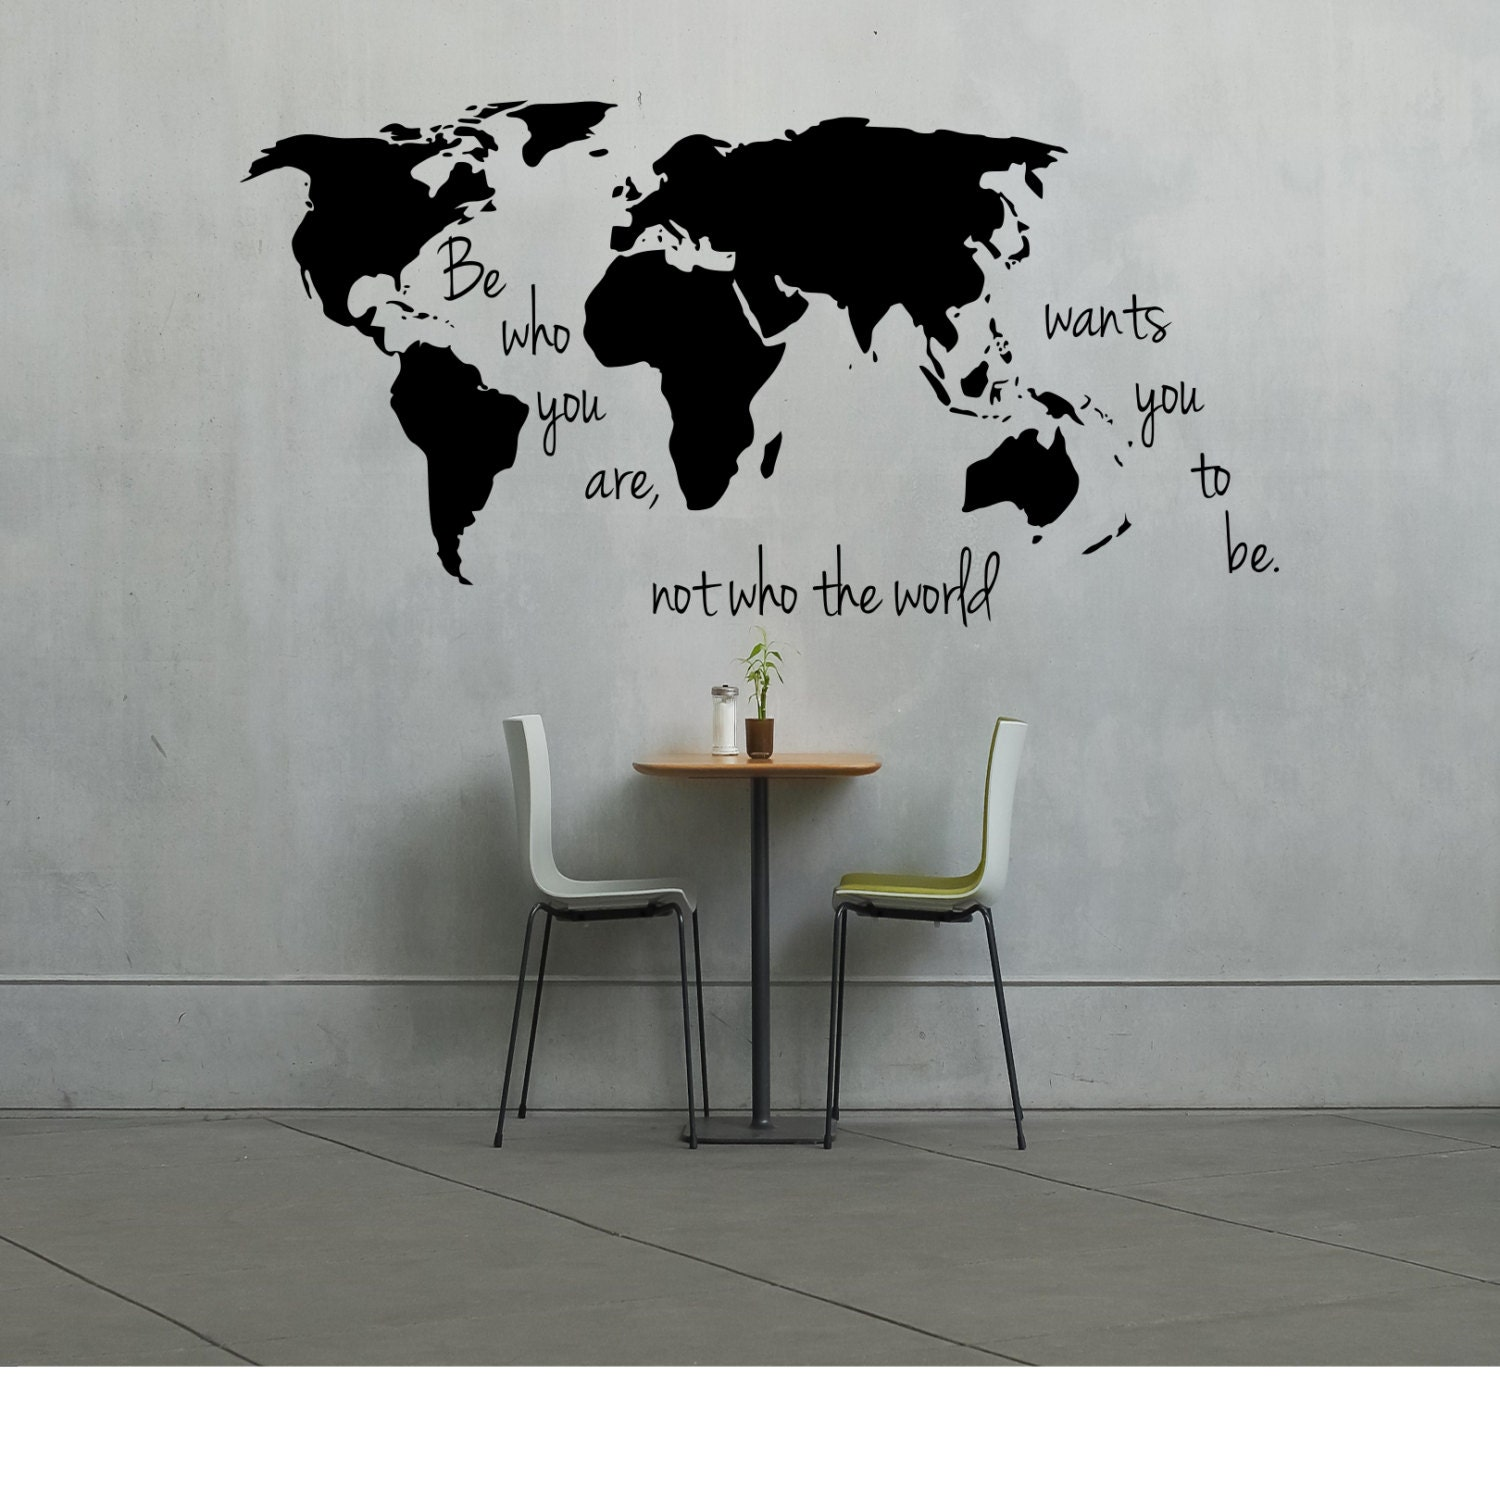 World map sticker for wall india - Large World Map Decal Be Who You Are Not Who The World Wants You